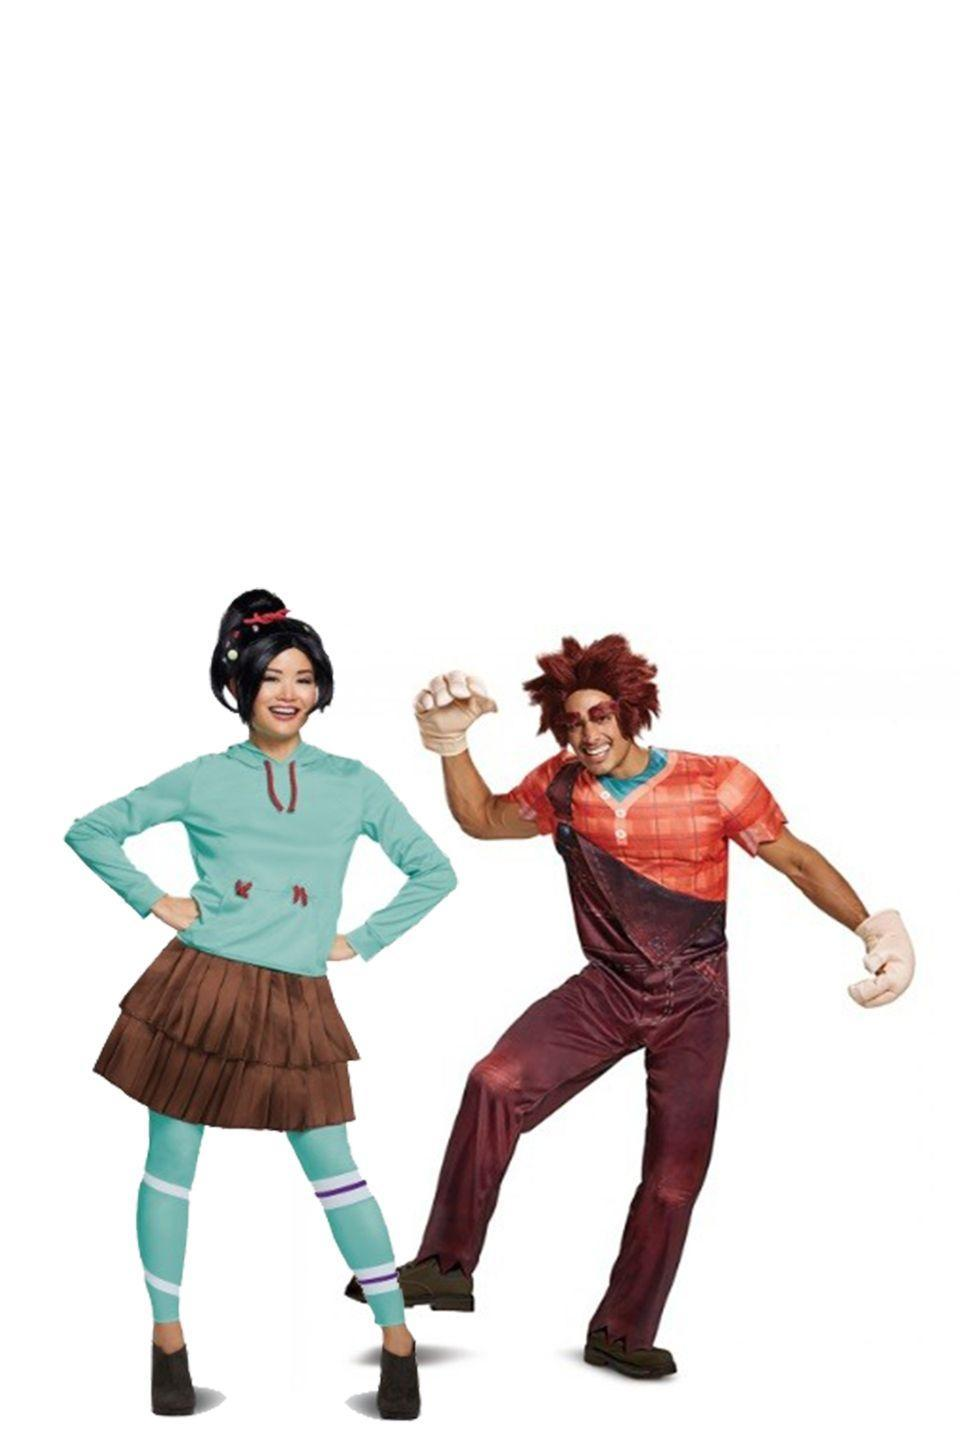 """<p>Level up! The avid movie-goers and gamers out there will be excited to see this fairly new costume hit the racks. Dress up as Ralph and Vanellope and see what kind of adventures you get into on Halloween night.</p><p><a class=""""link rapid-noclick-resp"""" href=""""https://go.redirectingat.com?id=74968X1596630&url=https%3A%2F%2Fwww.halloweencostumes.com%2Fwreck-it-ralph-2-adult-ralph-deluxe-costume.html&sref=https%3A%2F%2Fwww.womansday.com%2Fstyle%2Fg28691602%2Fdisney-couples-costumes%2F"""" rel=""""nofollow noopener"""" target=""""_blank"""" data-ylk=""""slk:SHOP RALPH COSTUME"""">SHOP RALPH COSTUME</a></p><p><a class=""""link rapid-noclick-resp"""" href=""""https://go.redirectingat.com?id=74968X1596630&url=https%3A%2F%2Fwww.halloweencostumes.com%2Fwreck-it-ralph-2-deluxe-vanellope-womens-costume.html&sref=https%3A%2F%2Fwww.womansday.com%2Fstyle%2Fg28691602%2Fdisney-couples-costumes%2F"""" rel=""""nofollow noopener"""" target=""""_blank"""" data-ylk=""""slk:SHOPE VANELLOPE COSTUME"""">SHOPE VANELLOPE COSTUME</a> </p>"""